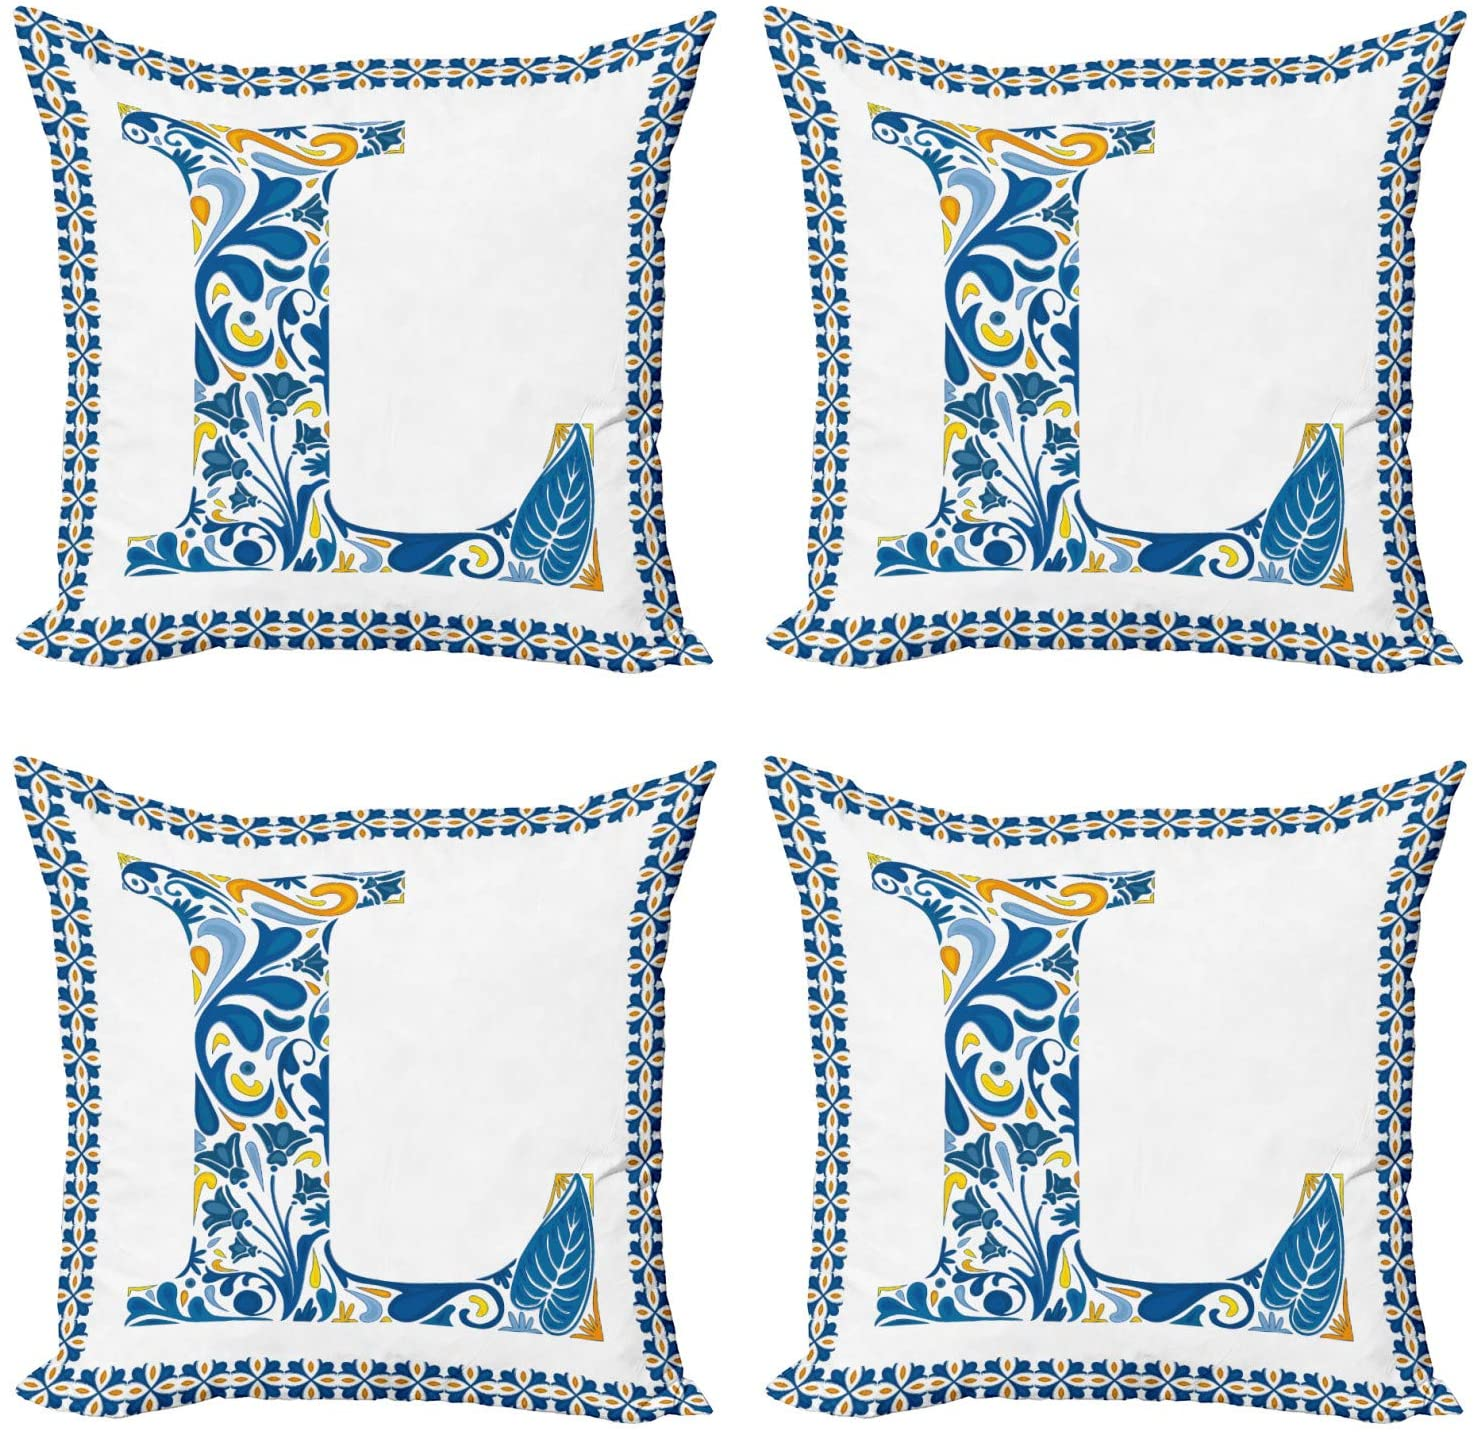 Ambesonne Letter L Decorative Throw Pillow Case Pack of 4, Capital L in Traditional Portuguese Art Abstract Patterned Font Design, Cushion Cover for Couch Living Room Car, 16